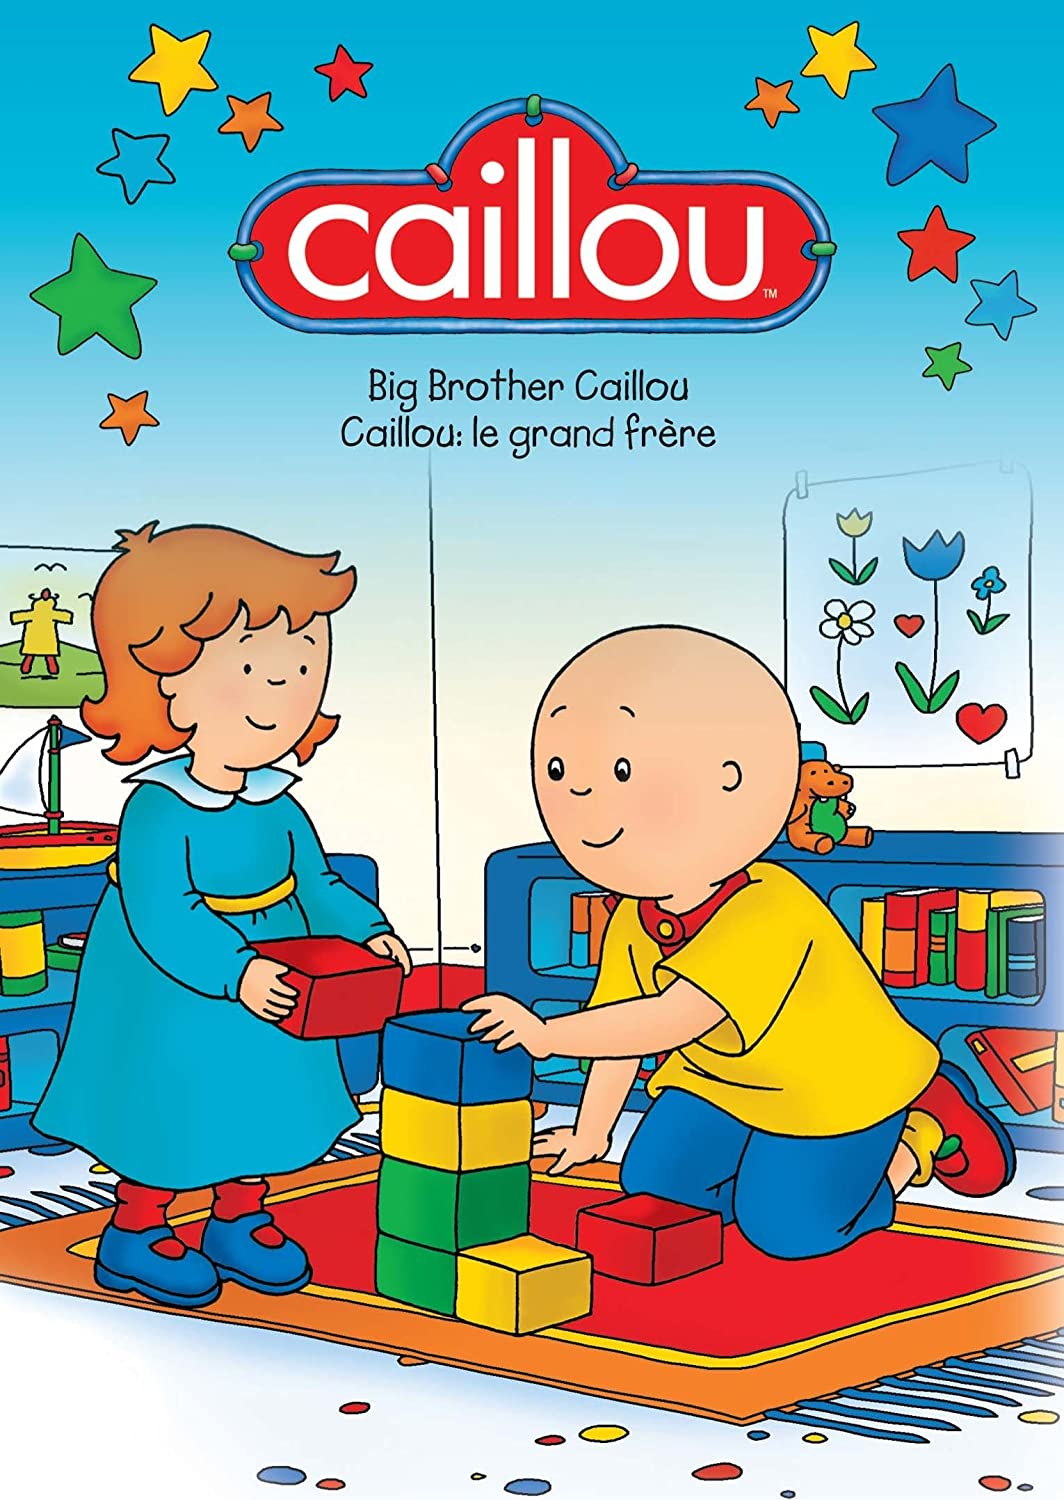 Caillou - Big Brother Caillou / Caillou - le grand frère (Bilingual) eOne Films Distribution Anime & Manga